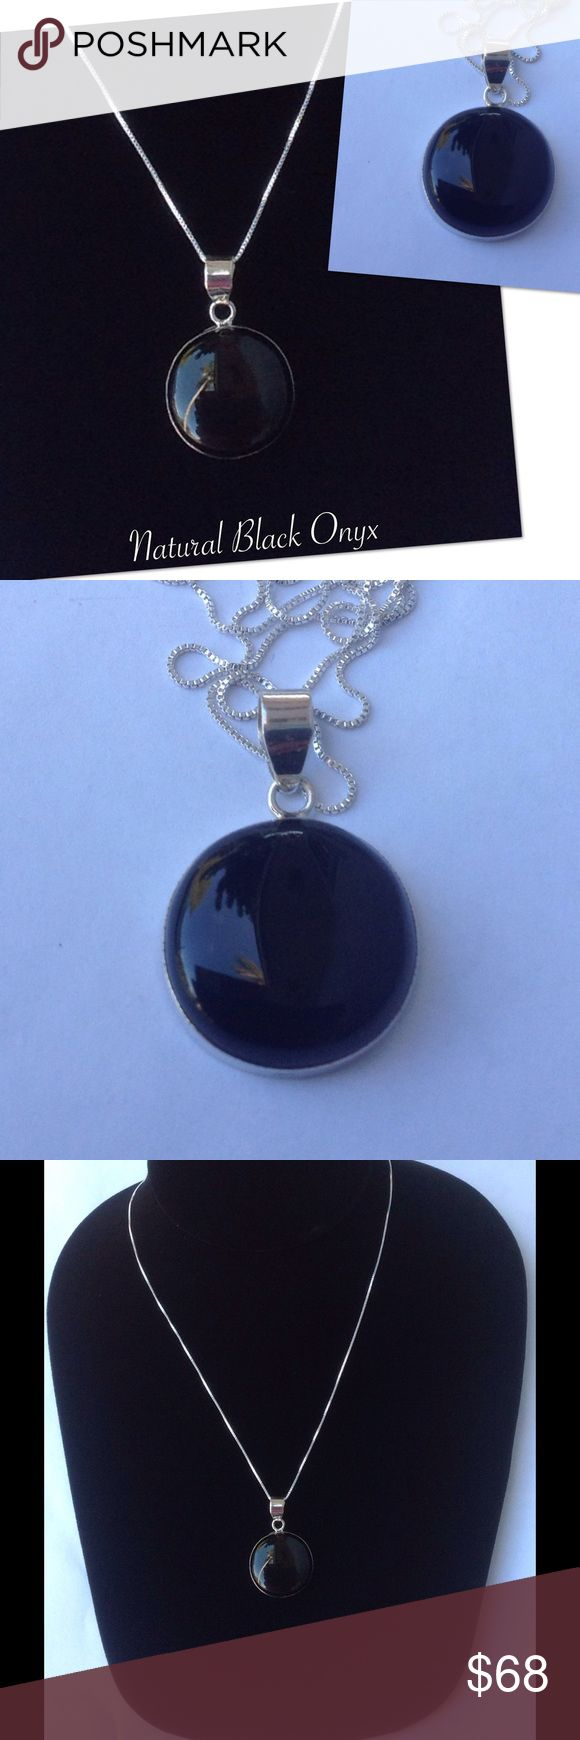 Natural Black Onyx Necklace 100% sterling silver. Natural black onyx with sterling silver going around stone ending with sterling silver bail. All my pendants are bought separate and I add the sterling silver chain. Check out my other items for a bundle discount. PRICE FIRM UNLESS BUNDLED. Jewelry Necklaces